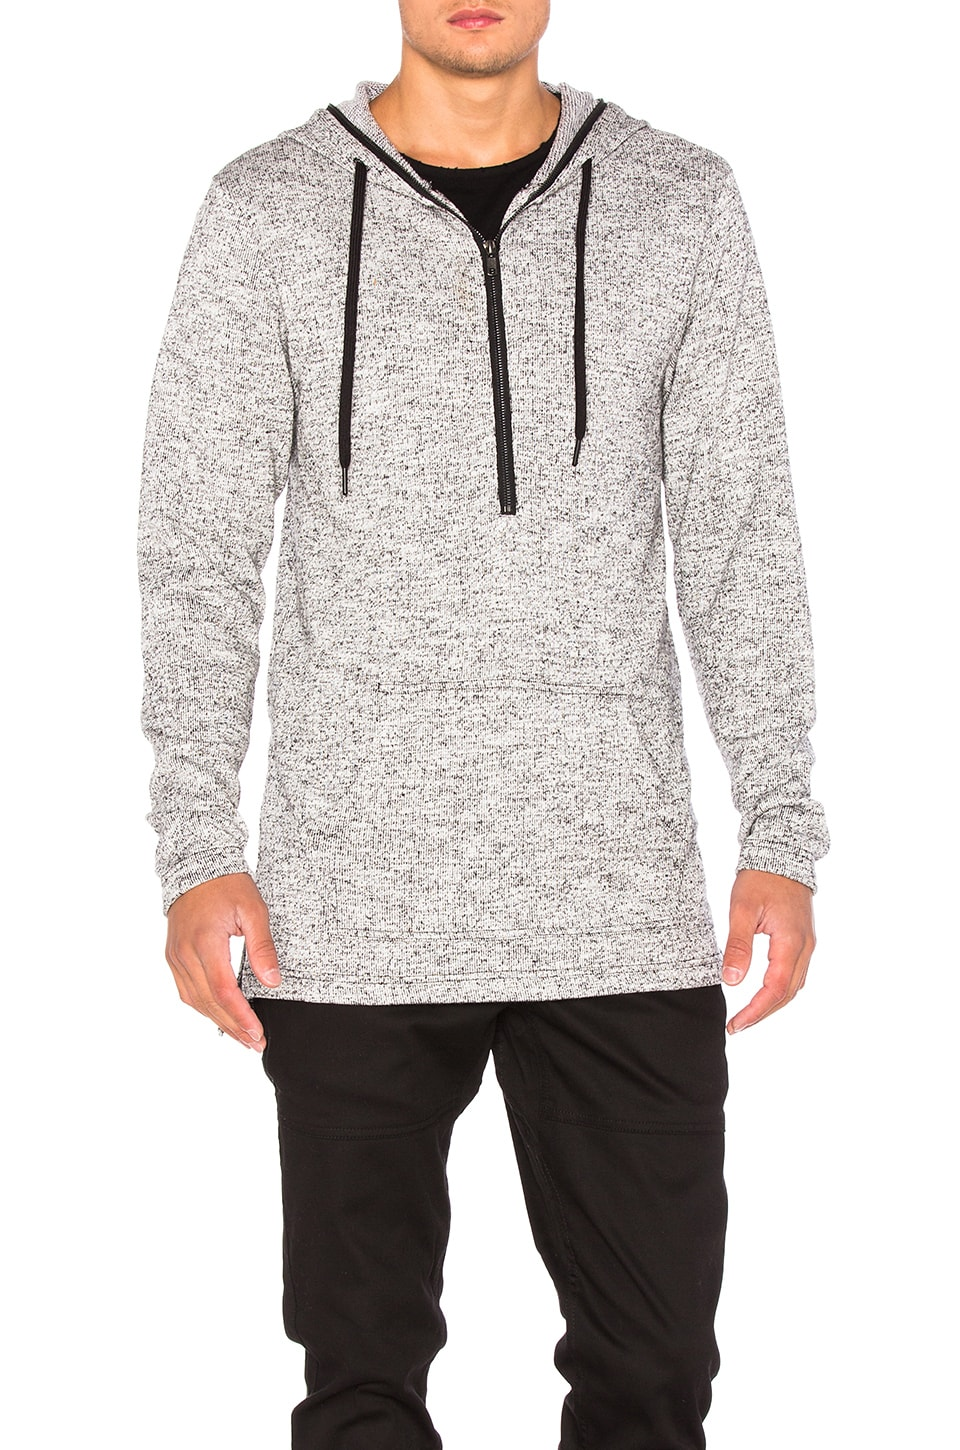 Haro Hoody by Publish